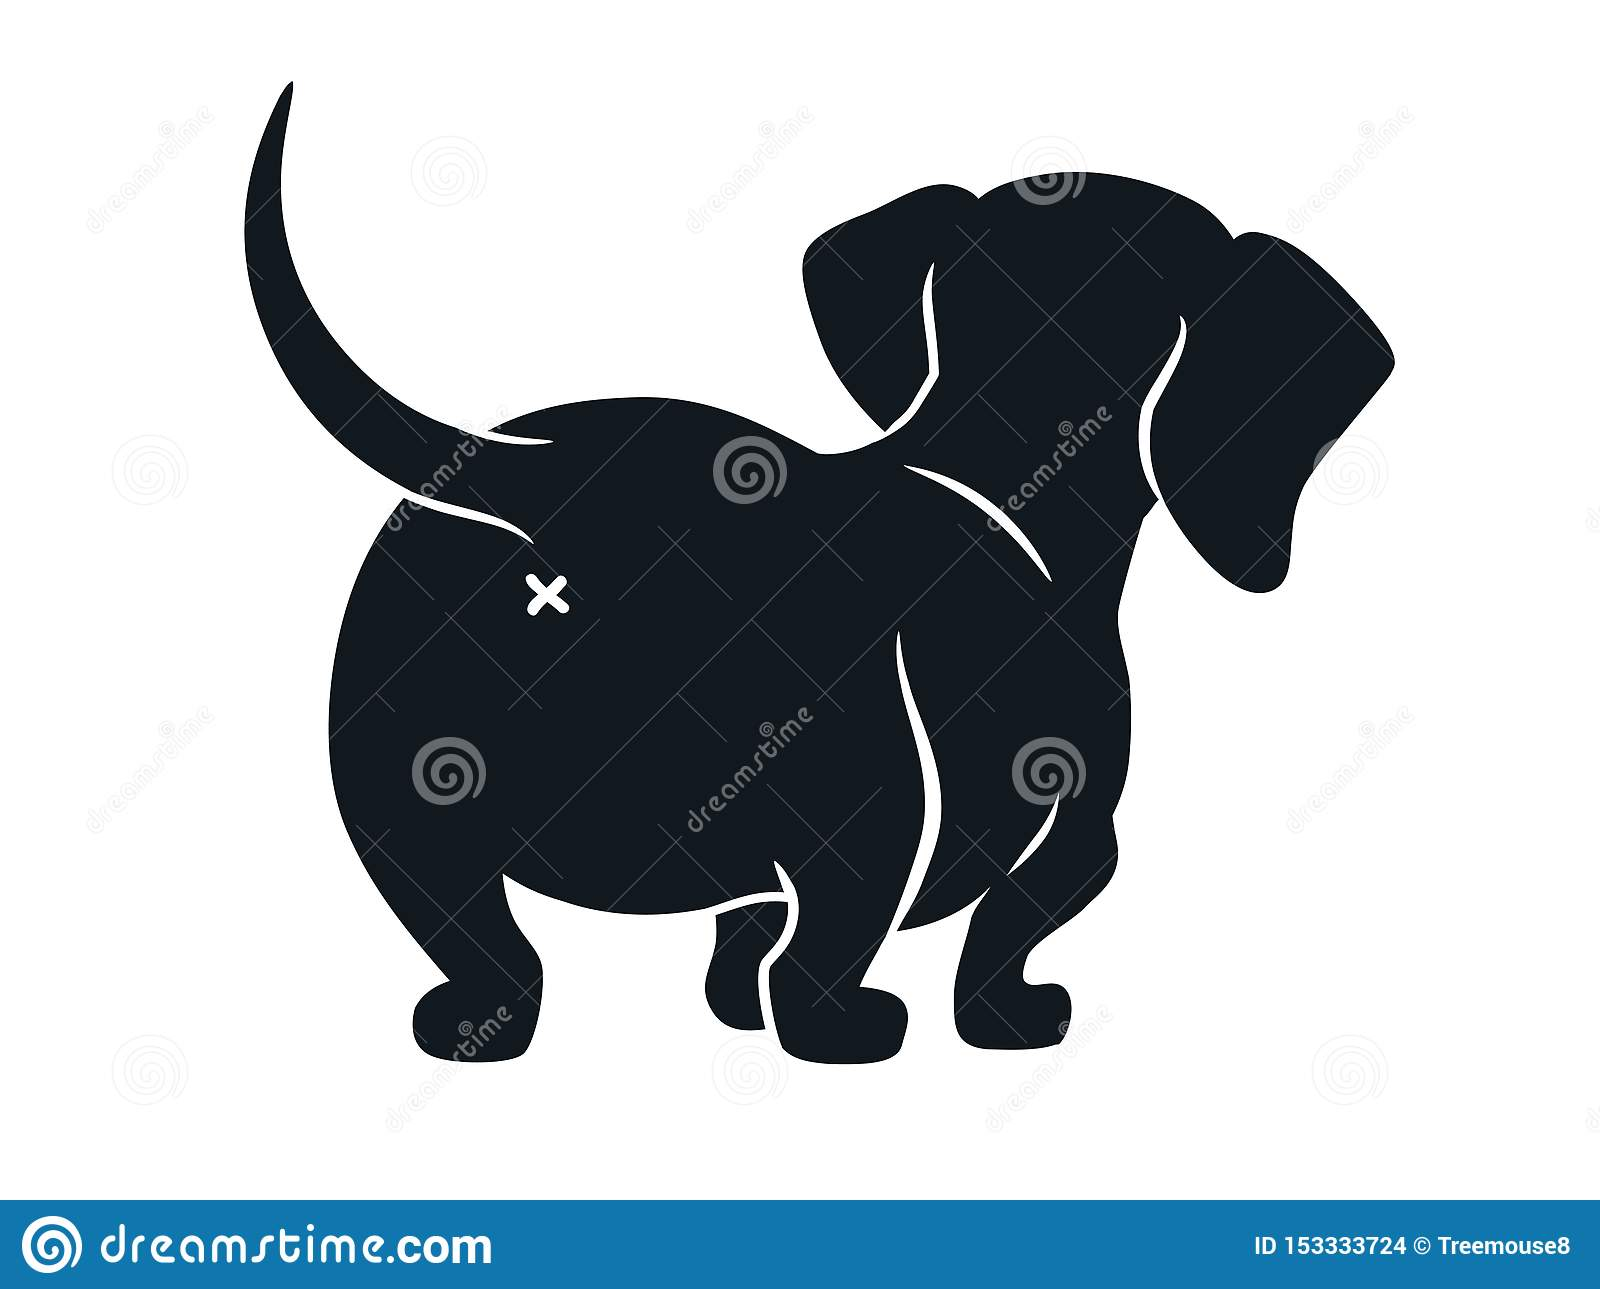 Cute Dachshund Sausage Dog Cartoon Illustration Isolated On White Simple Black And White Silhouette Drawing Of Wiener Stock Illustration Illustration Of Back Animal 153333724